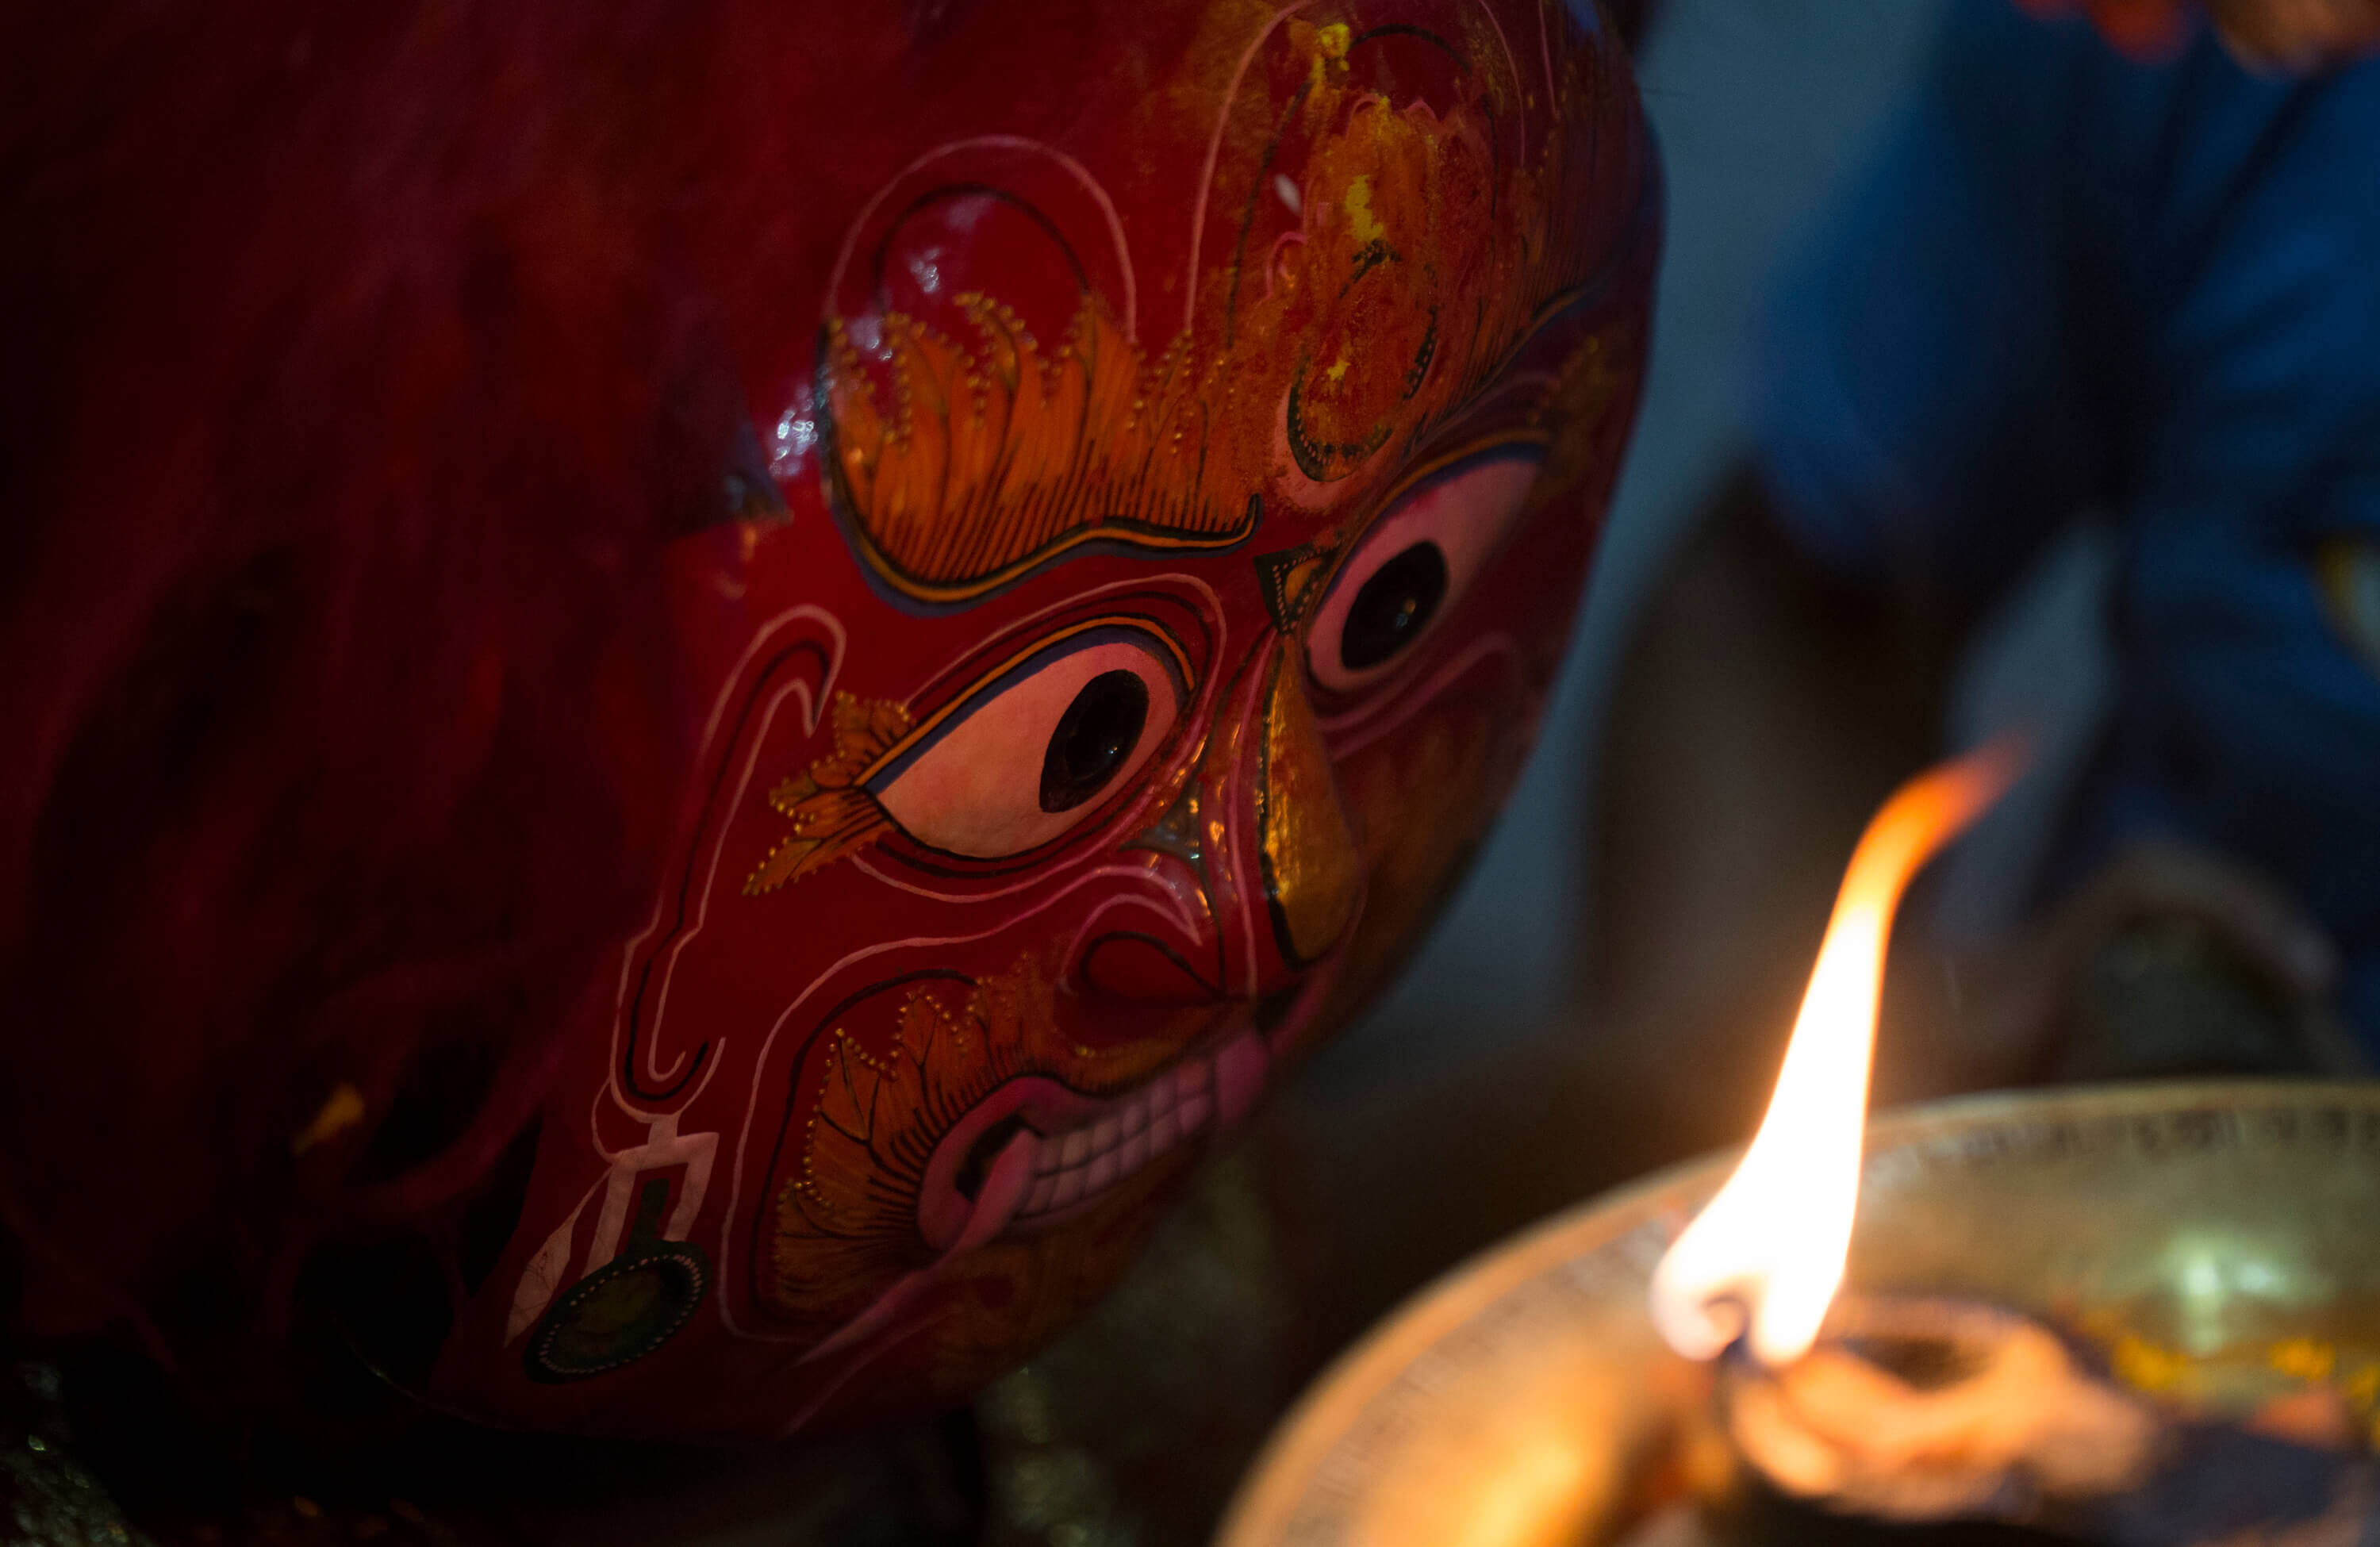 Getting behind the divine mask